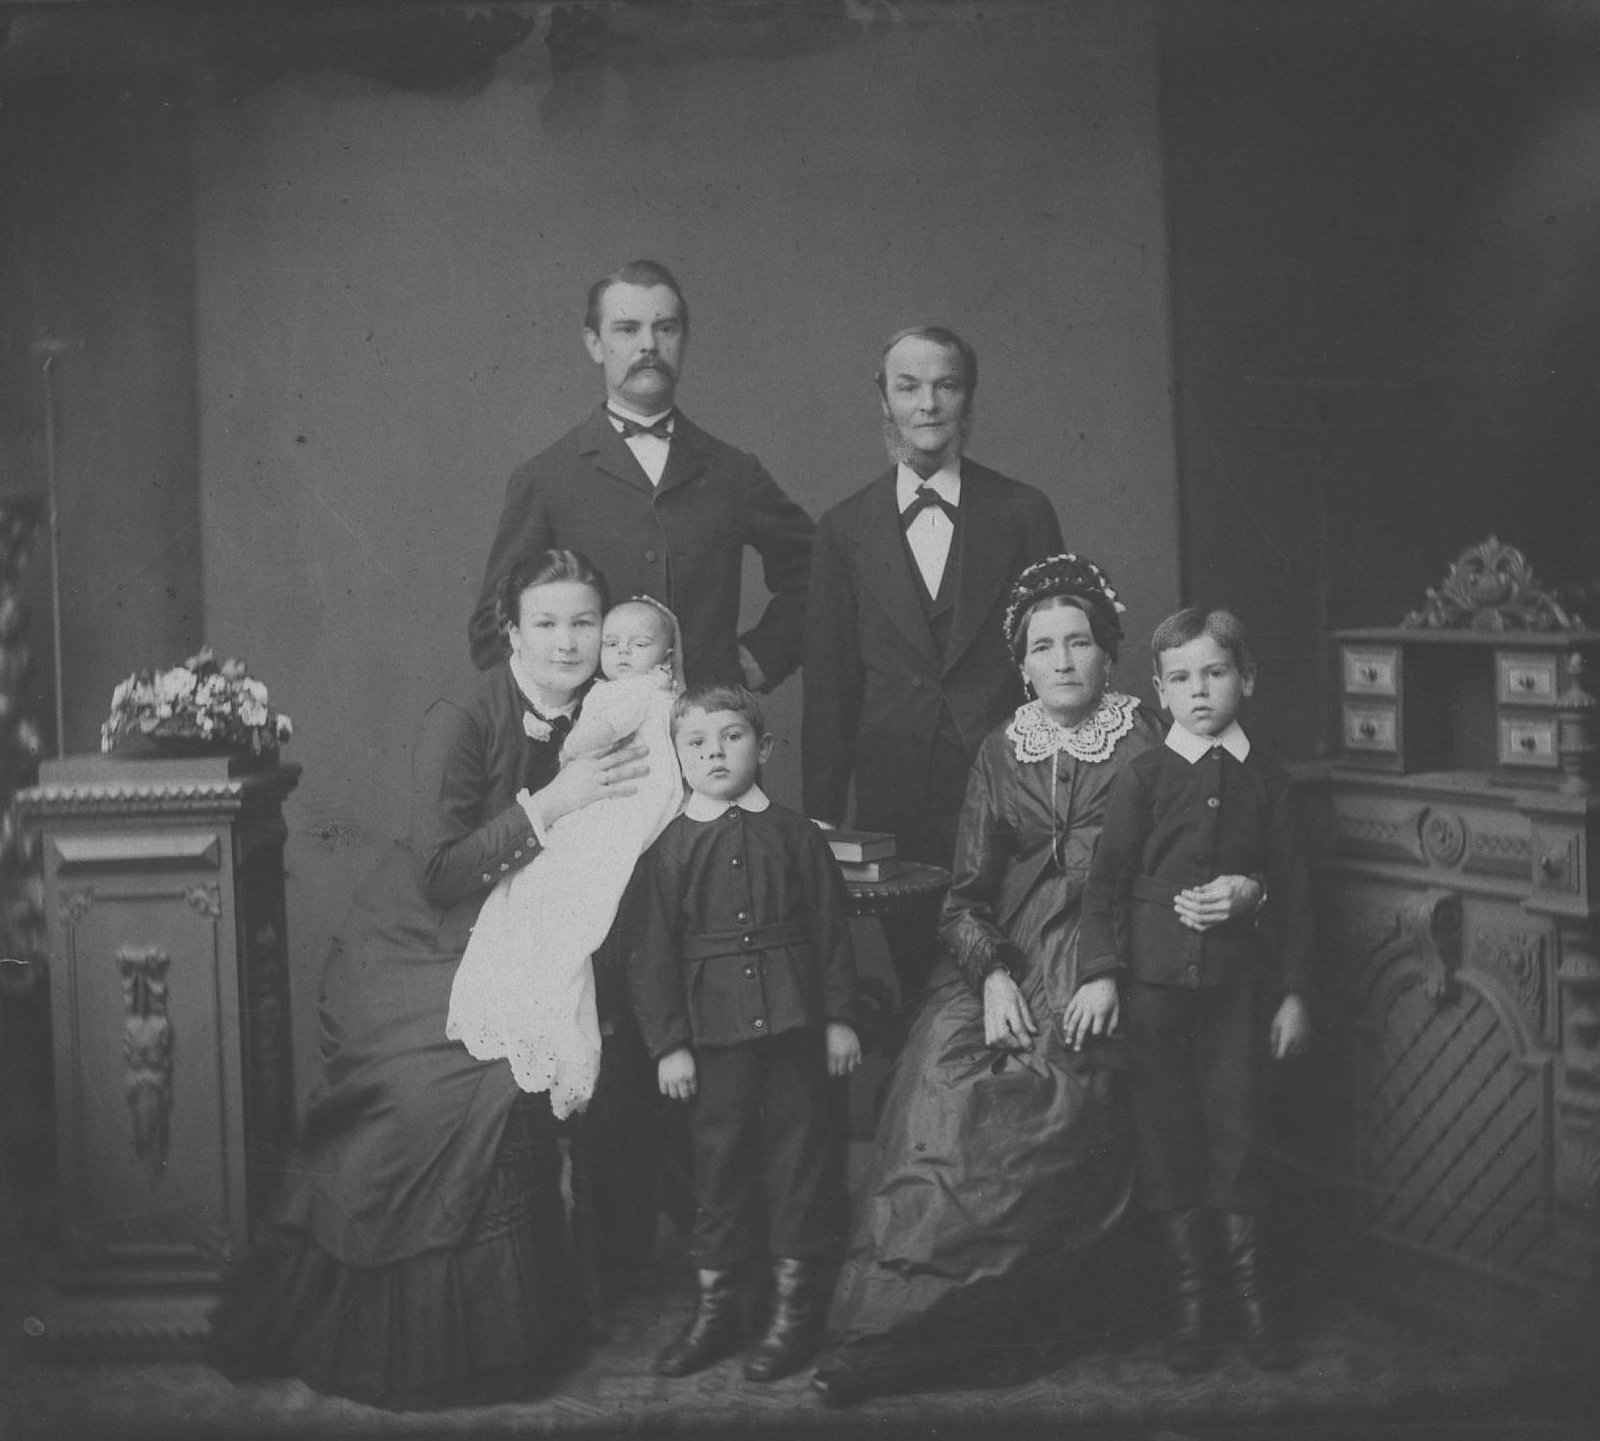 Reinhold Sieglerschmidt as a child in Christening gown , Autumn 1883, Europeana 1914-1918 / Jörn Sieglerschmidt, CC BY-SA